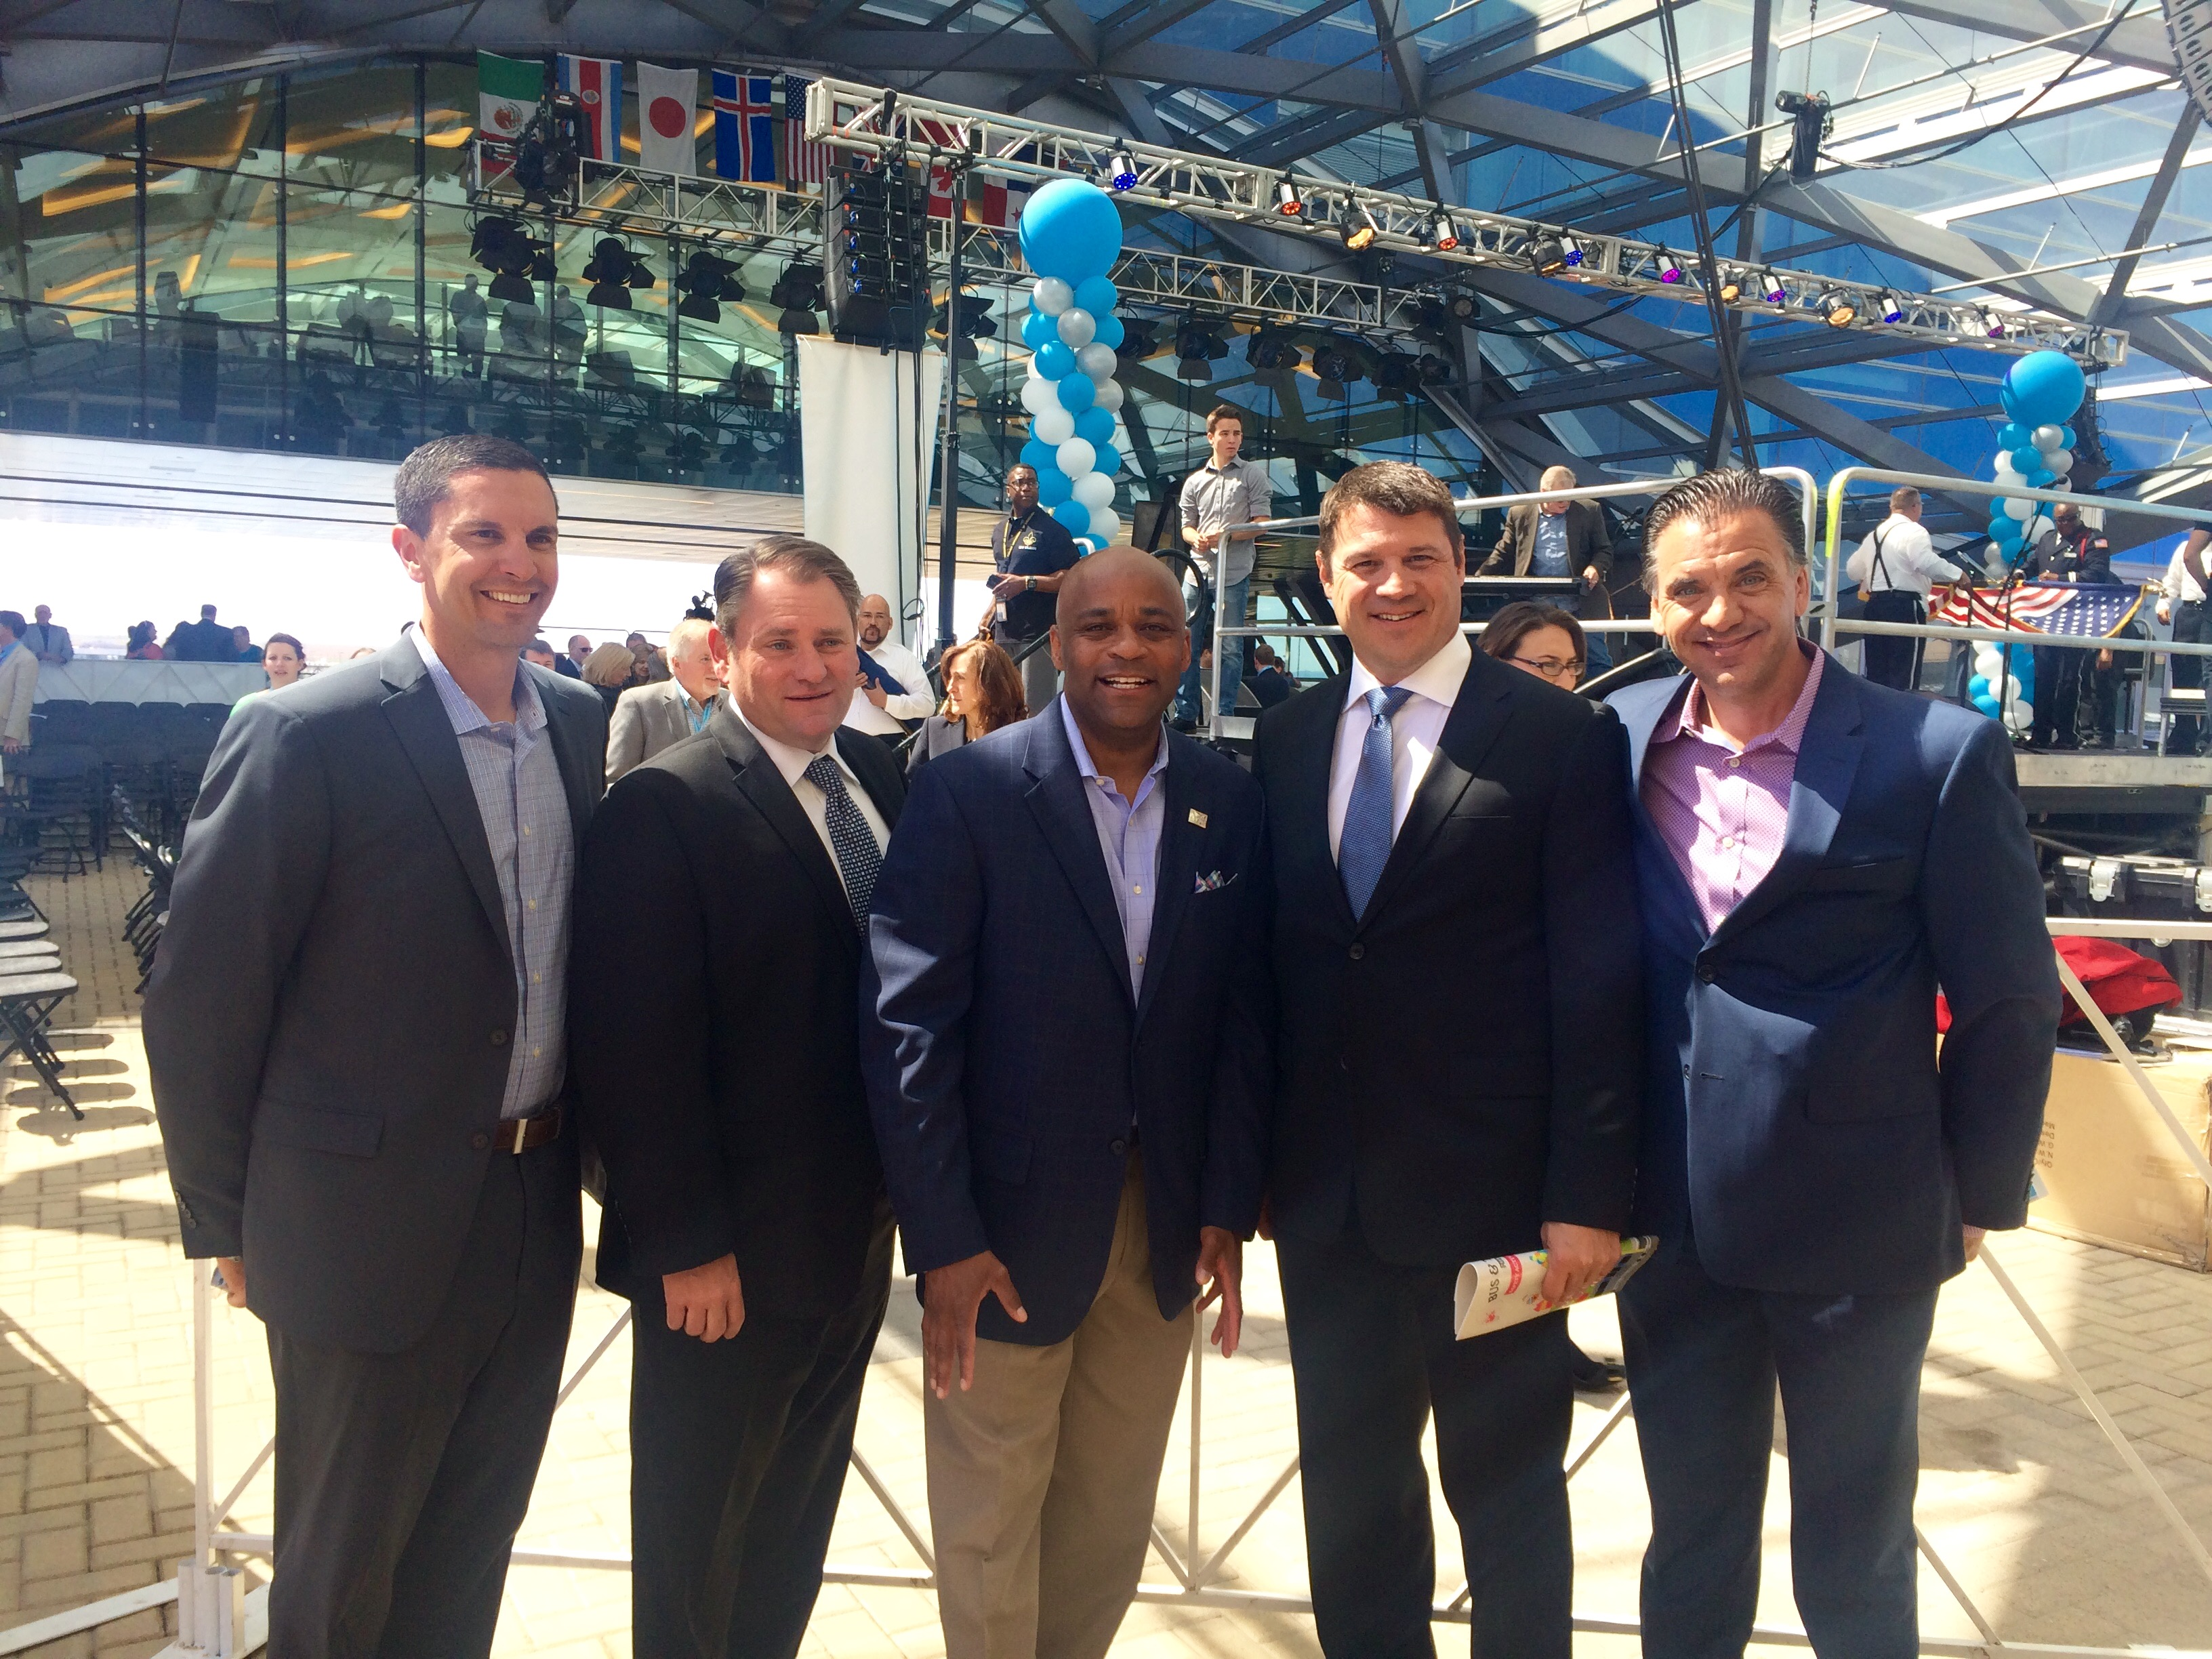 Representatives from RTL and Platte River Networks, Inc. at DIA for the opening ceremony with Denver Mayor Michael Hancock (center)